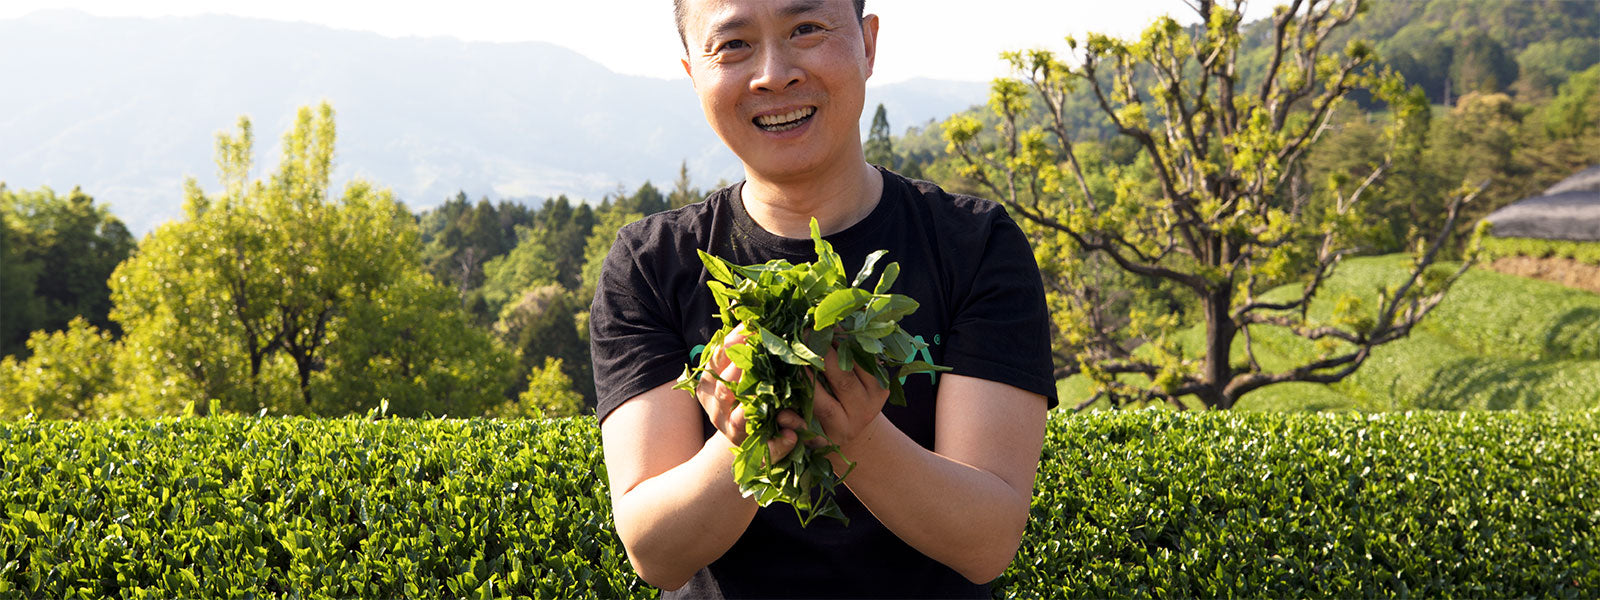 Encha Founder offering organic matcha green tea leaves in farm